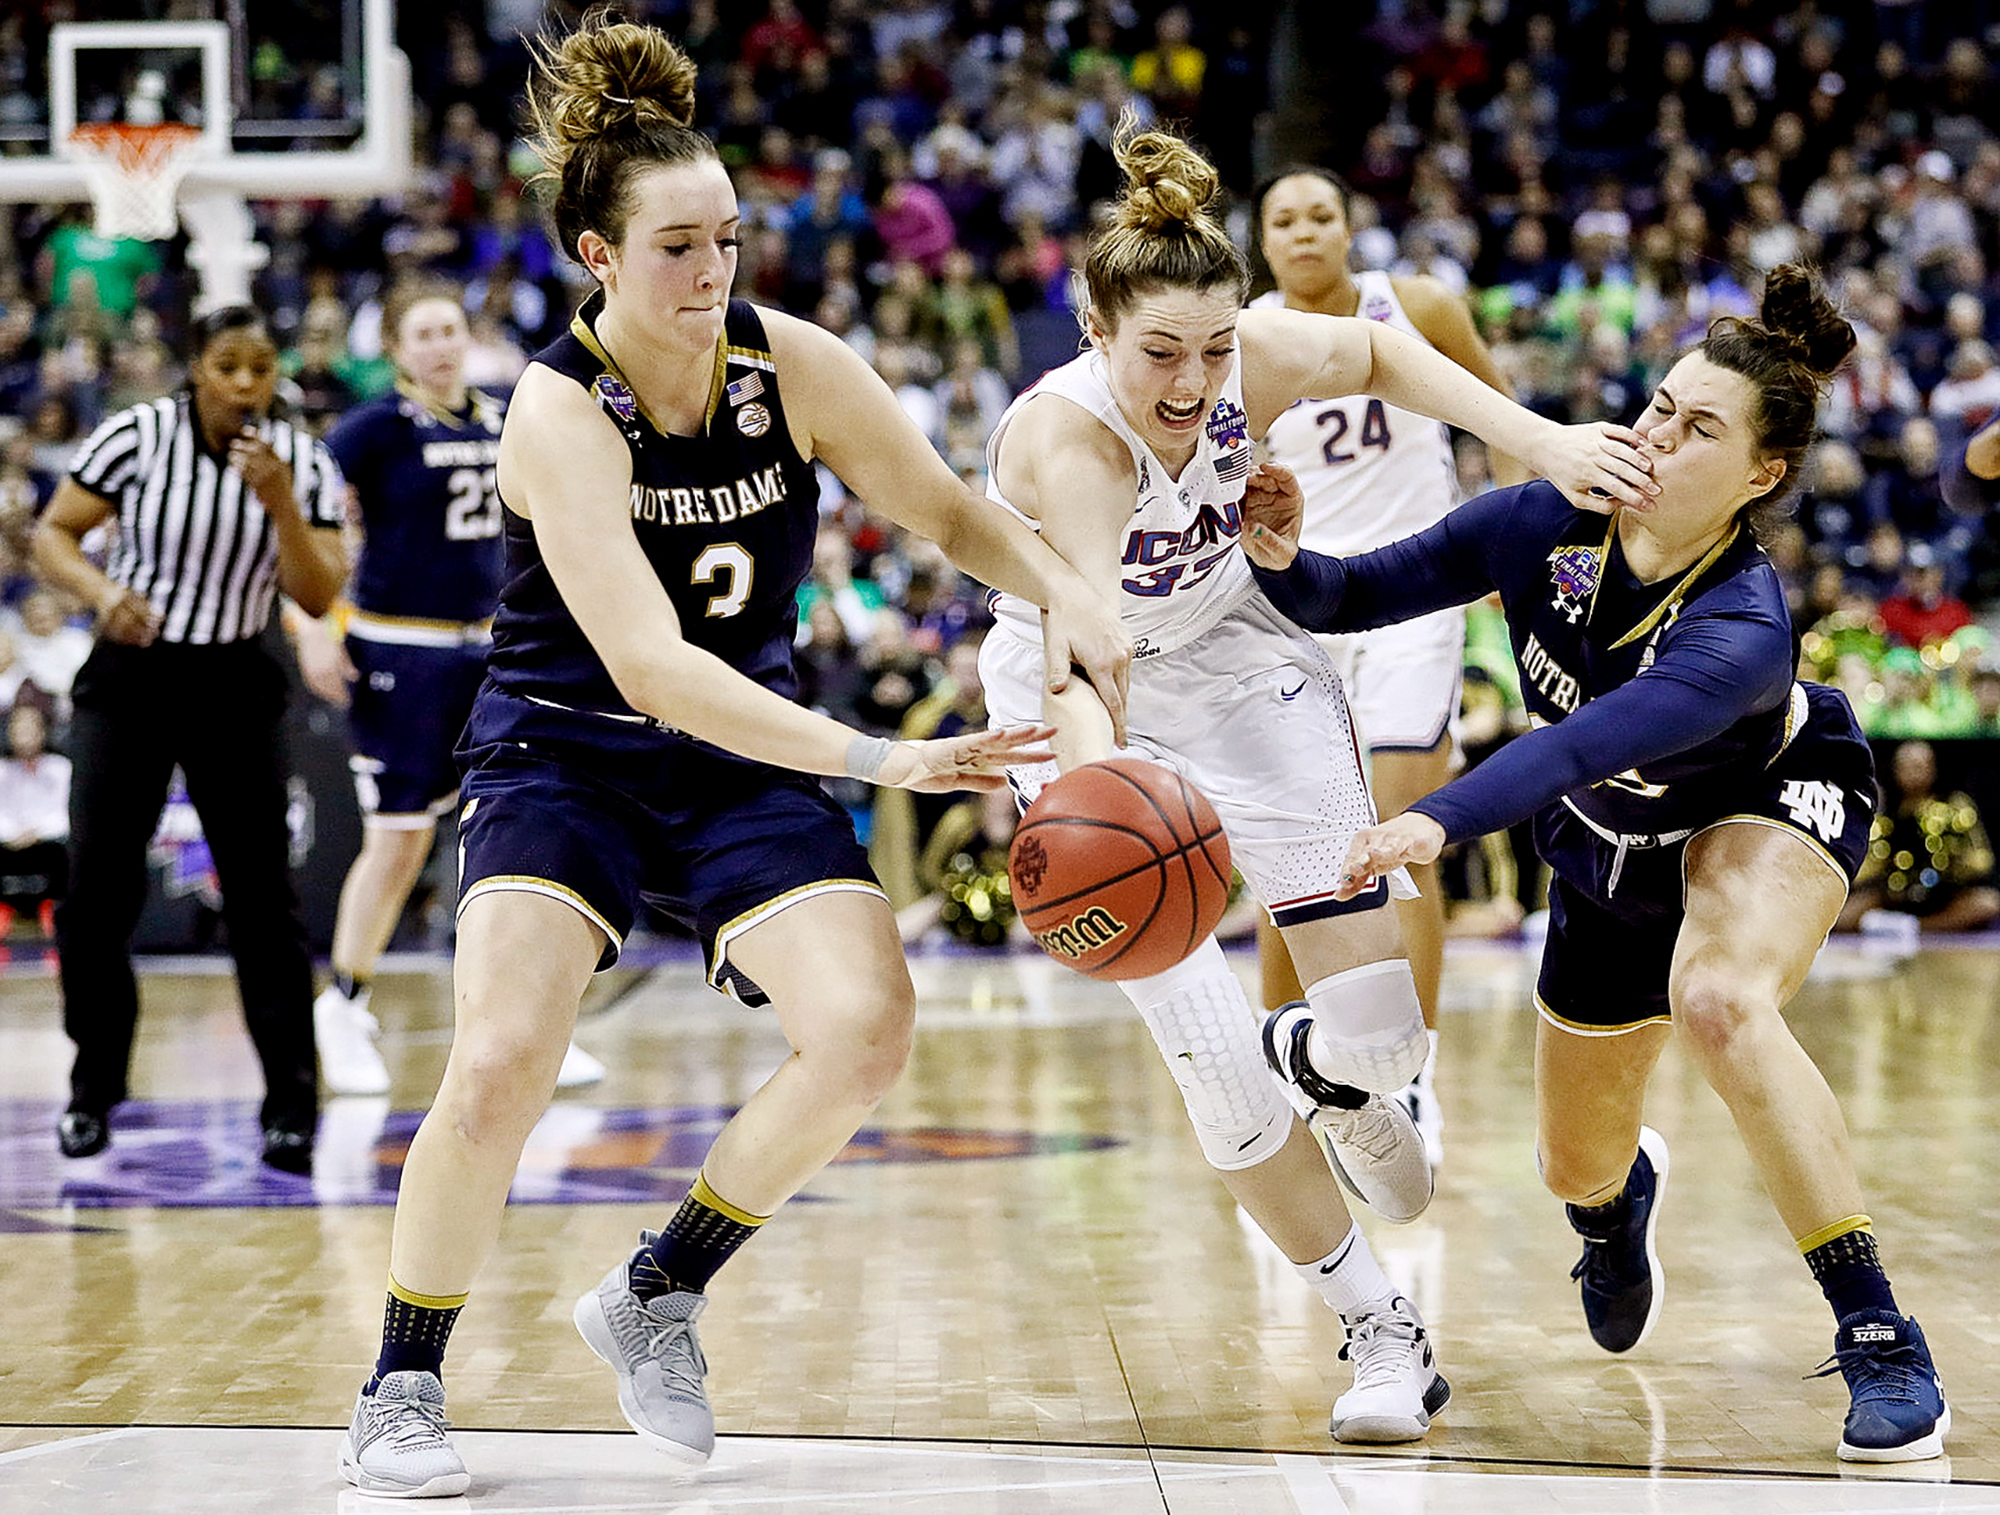 UConn's Katie Lou Samuelson vs. Notre Dame's Marina Mabrey in the NCAA Final Four.